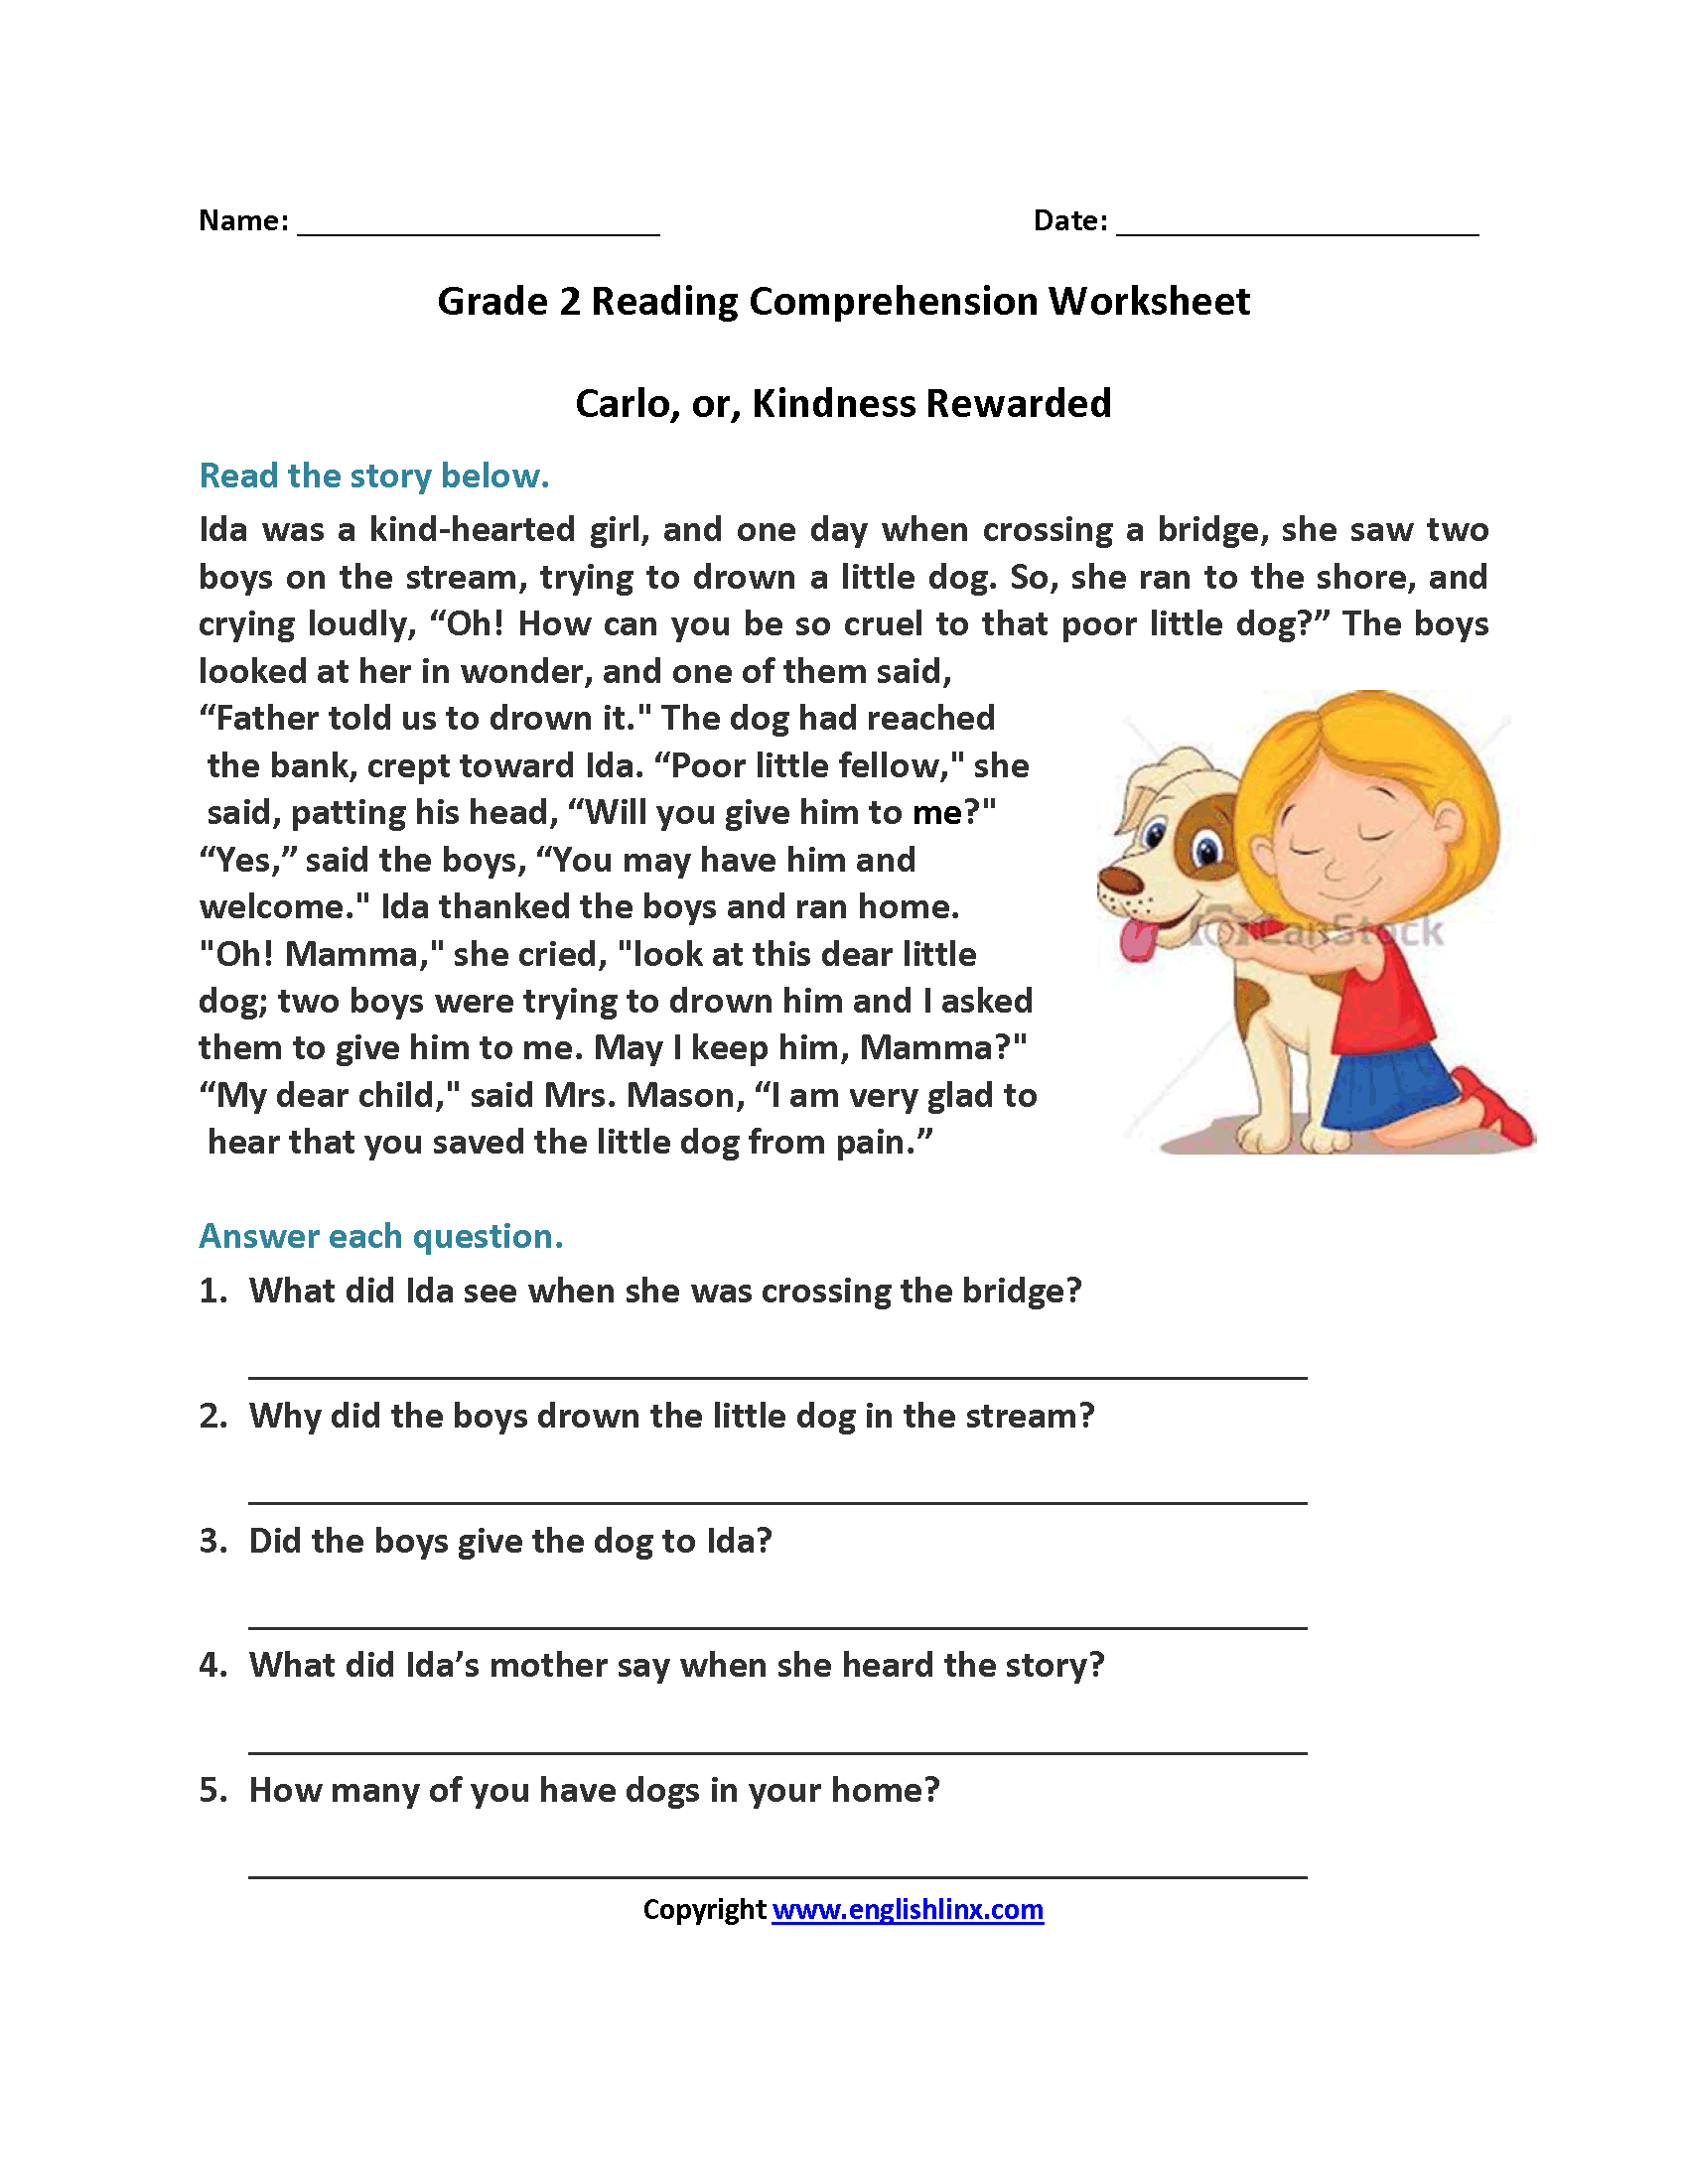 Second Grade Reading Worksheet The Best Worksheets Image